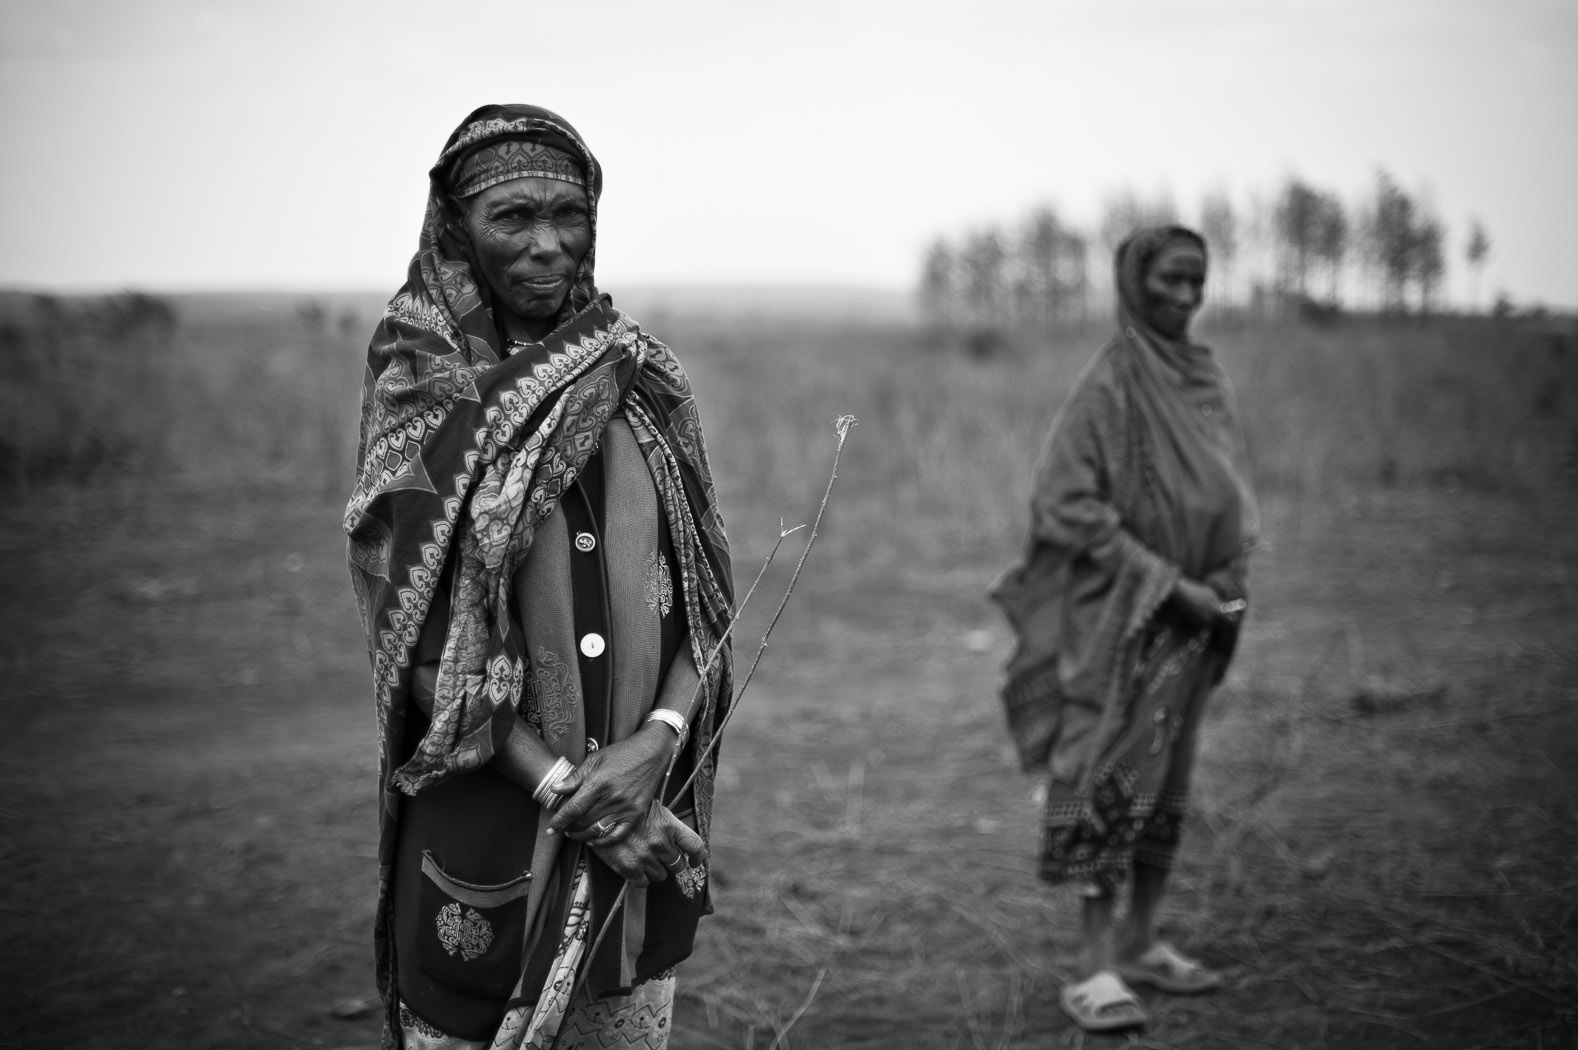 """The Marsabit region used to be known as the bread-basket of Kenya; as little as twenty years ago, there used to be large areas of forest here, and plentiful rain. The landscape today is arid scrubland, where animals now compete with humans for any available water, which is having to be trucked in from distant water sources.  Helema Guy (left) and Kula Roba (right) have lost almost all of their livestock through the drought. Living close to Marsabit, they say that the rains have failed here for several years.  Helema will sell one of her few remaining goats, today, to an NGO """"livestock off take"""" programme, where they will receive money for the animal, as well as the meat, to share amongst two other households."""